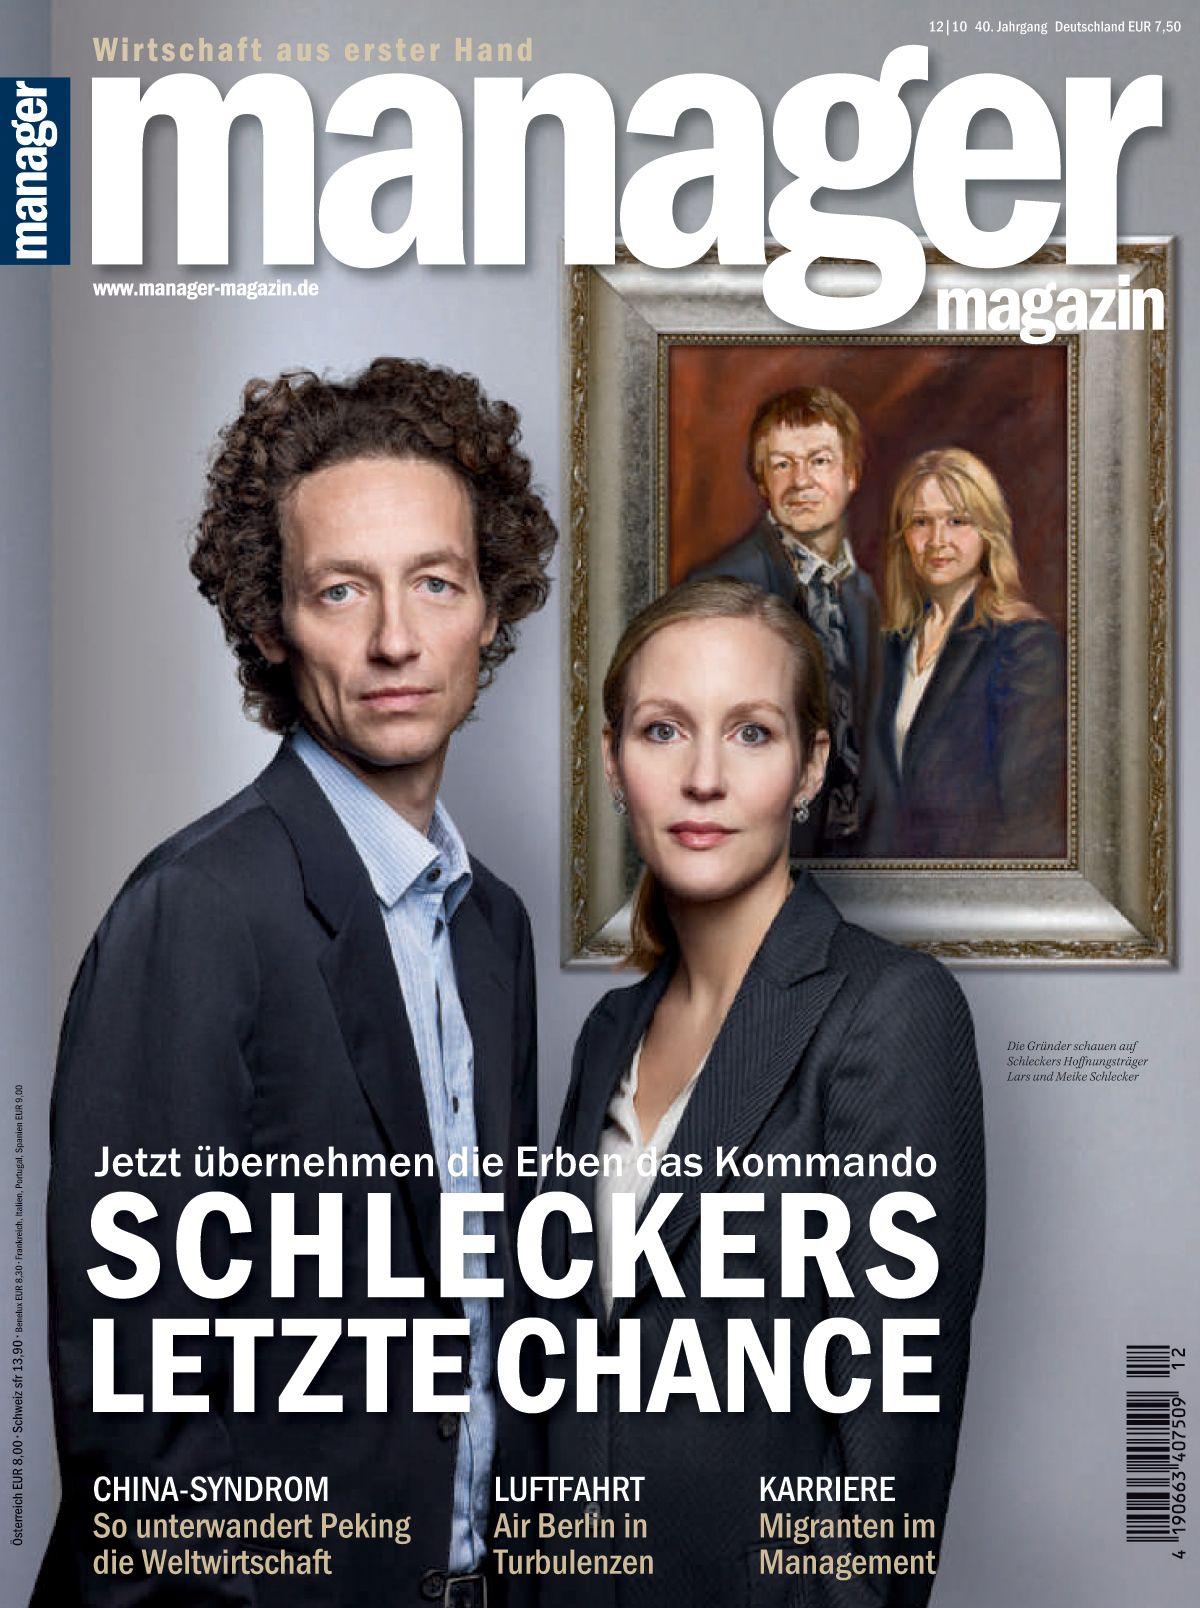 HEFTCOVER manager magazin 12/2010 Schleckers letzte Chance